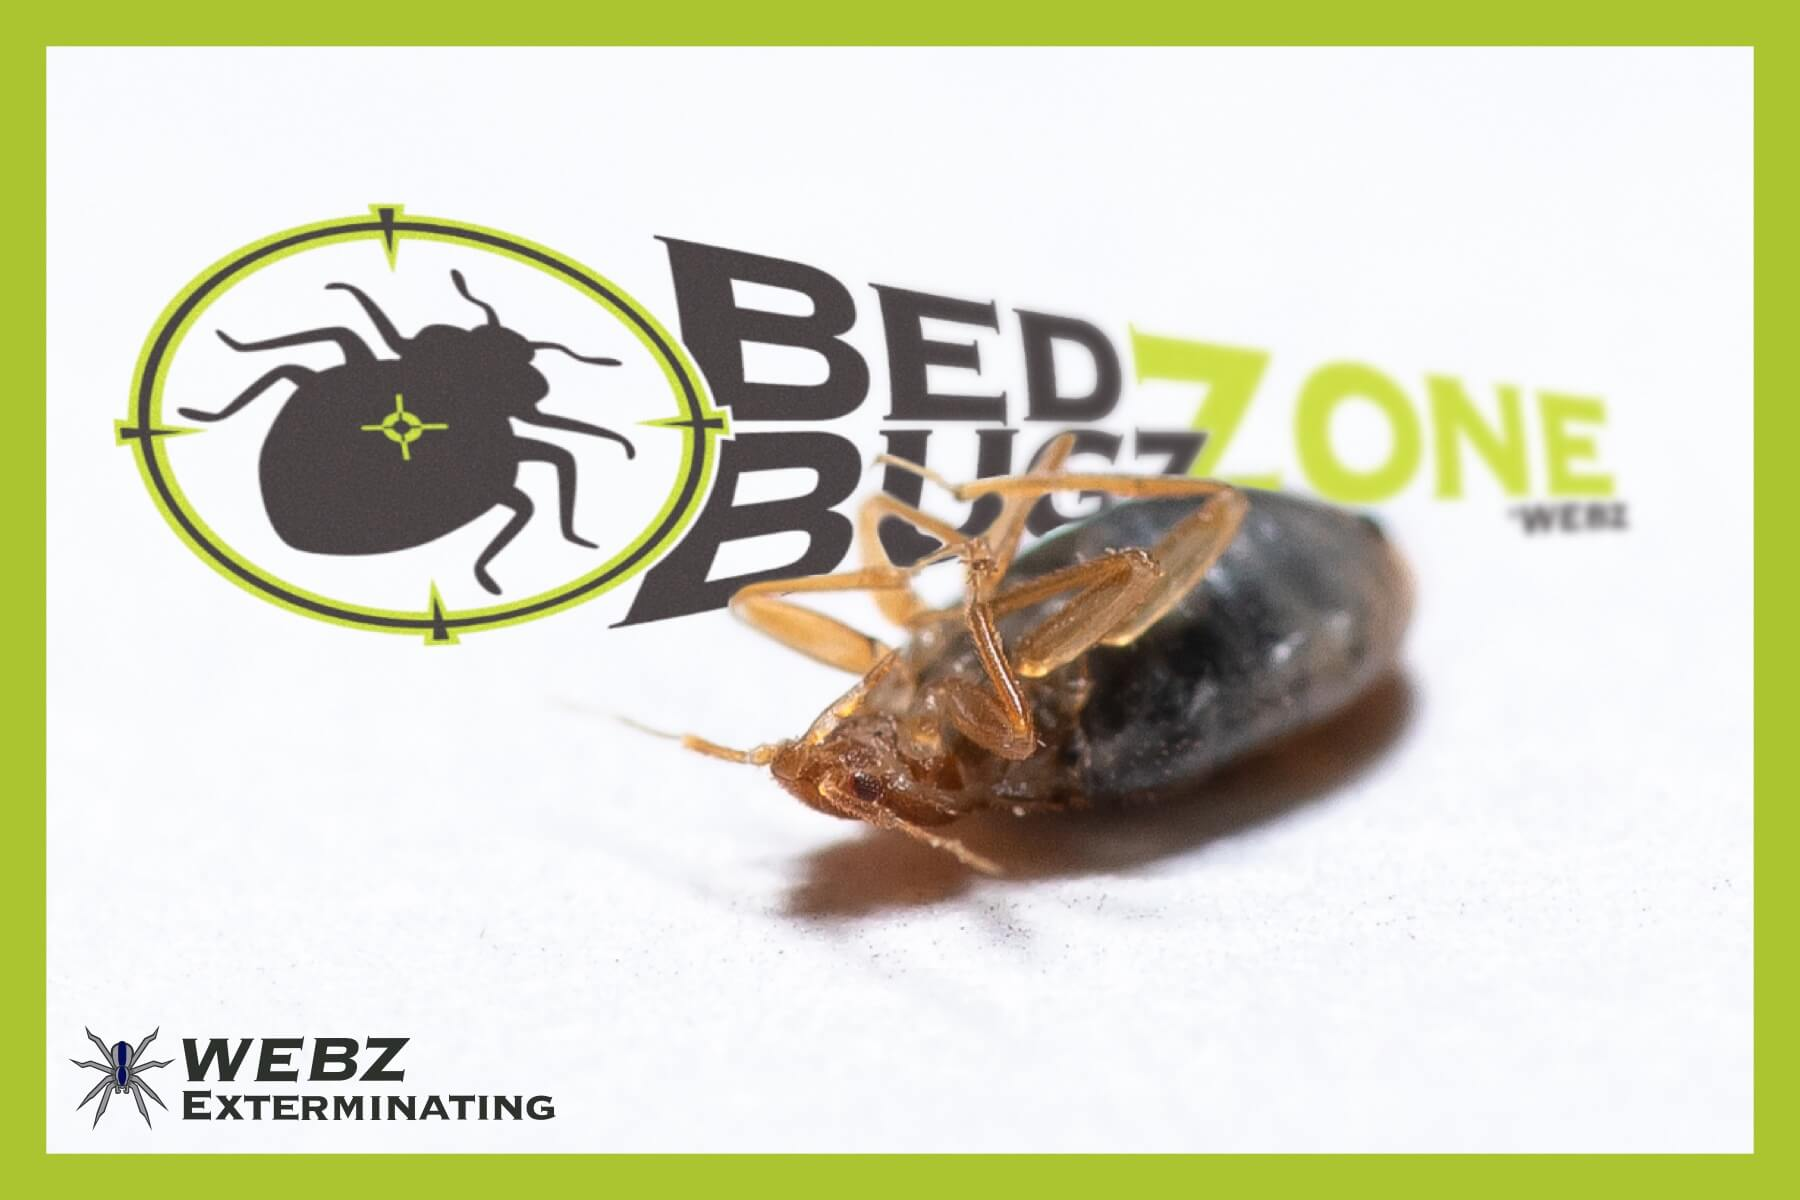 cincinnati bed bug service